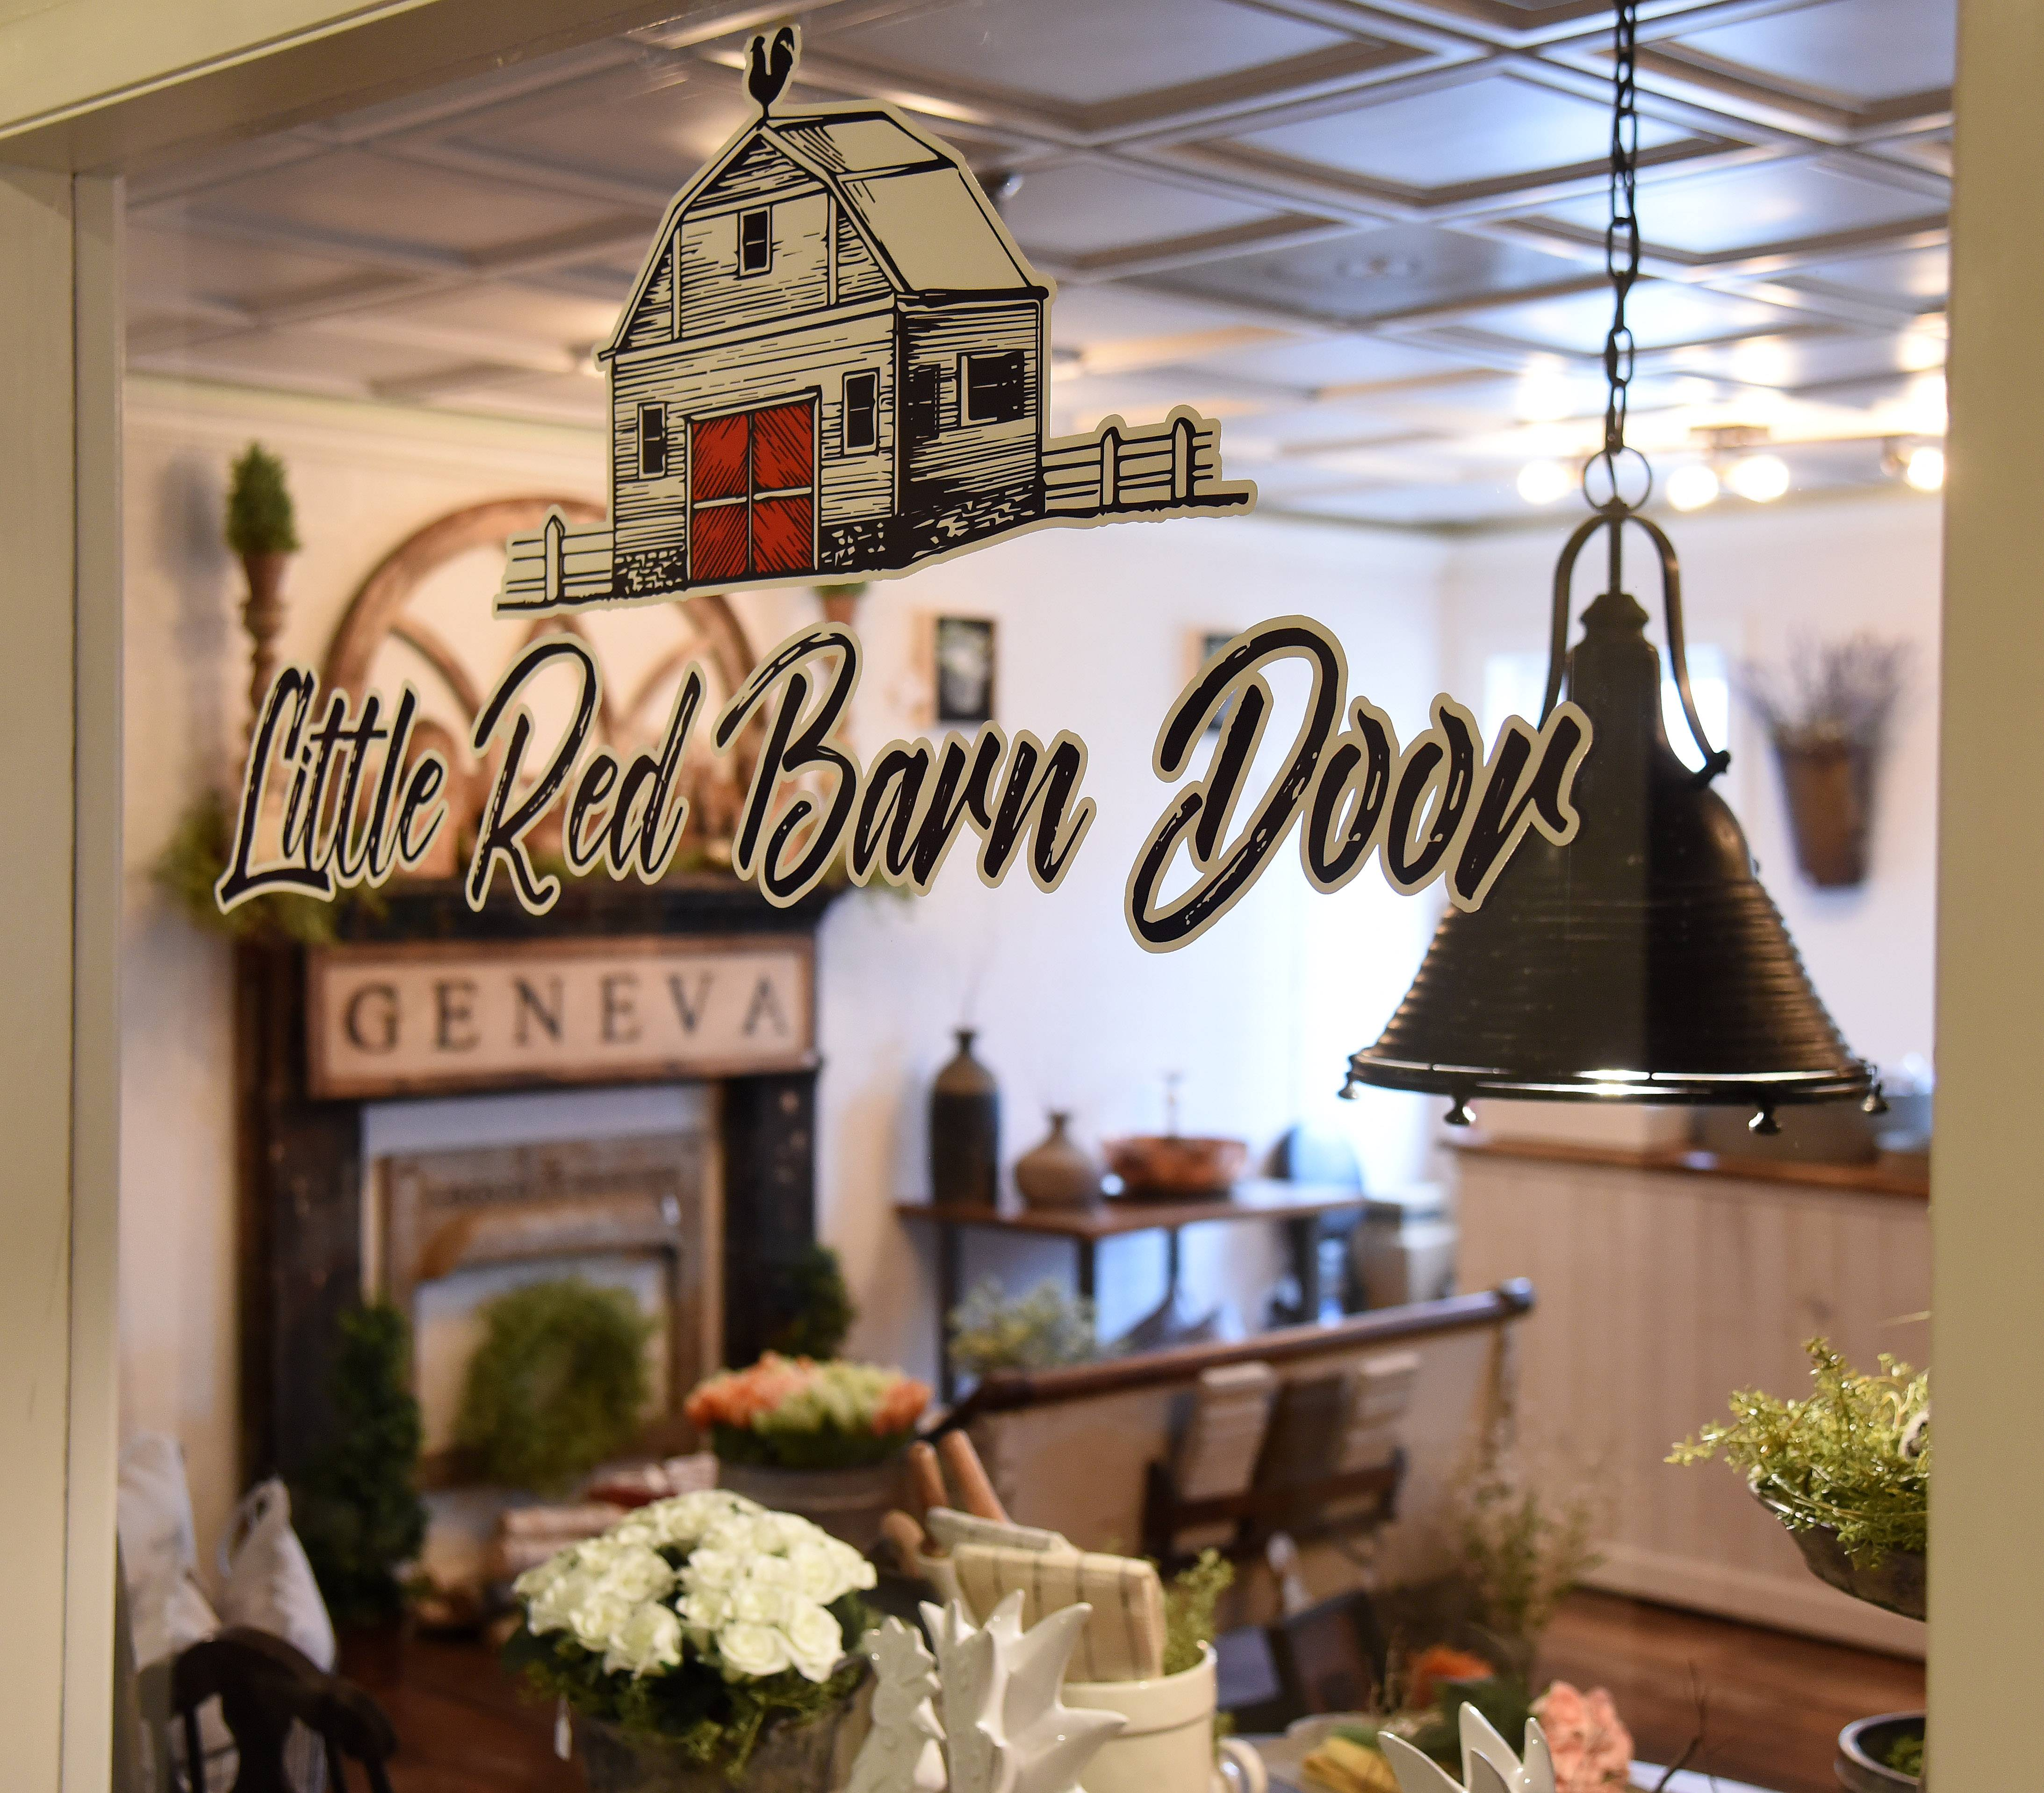 Little Red Barn Door home décor and furniture shop is new to the Berry House Shops at 227 S. Third St. in Geneva.